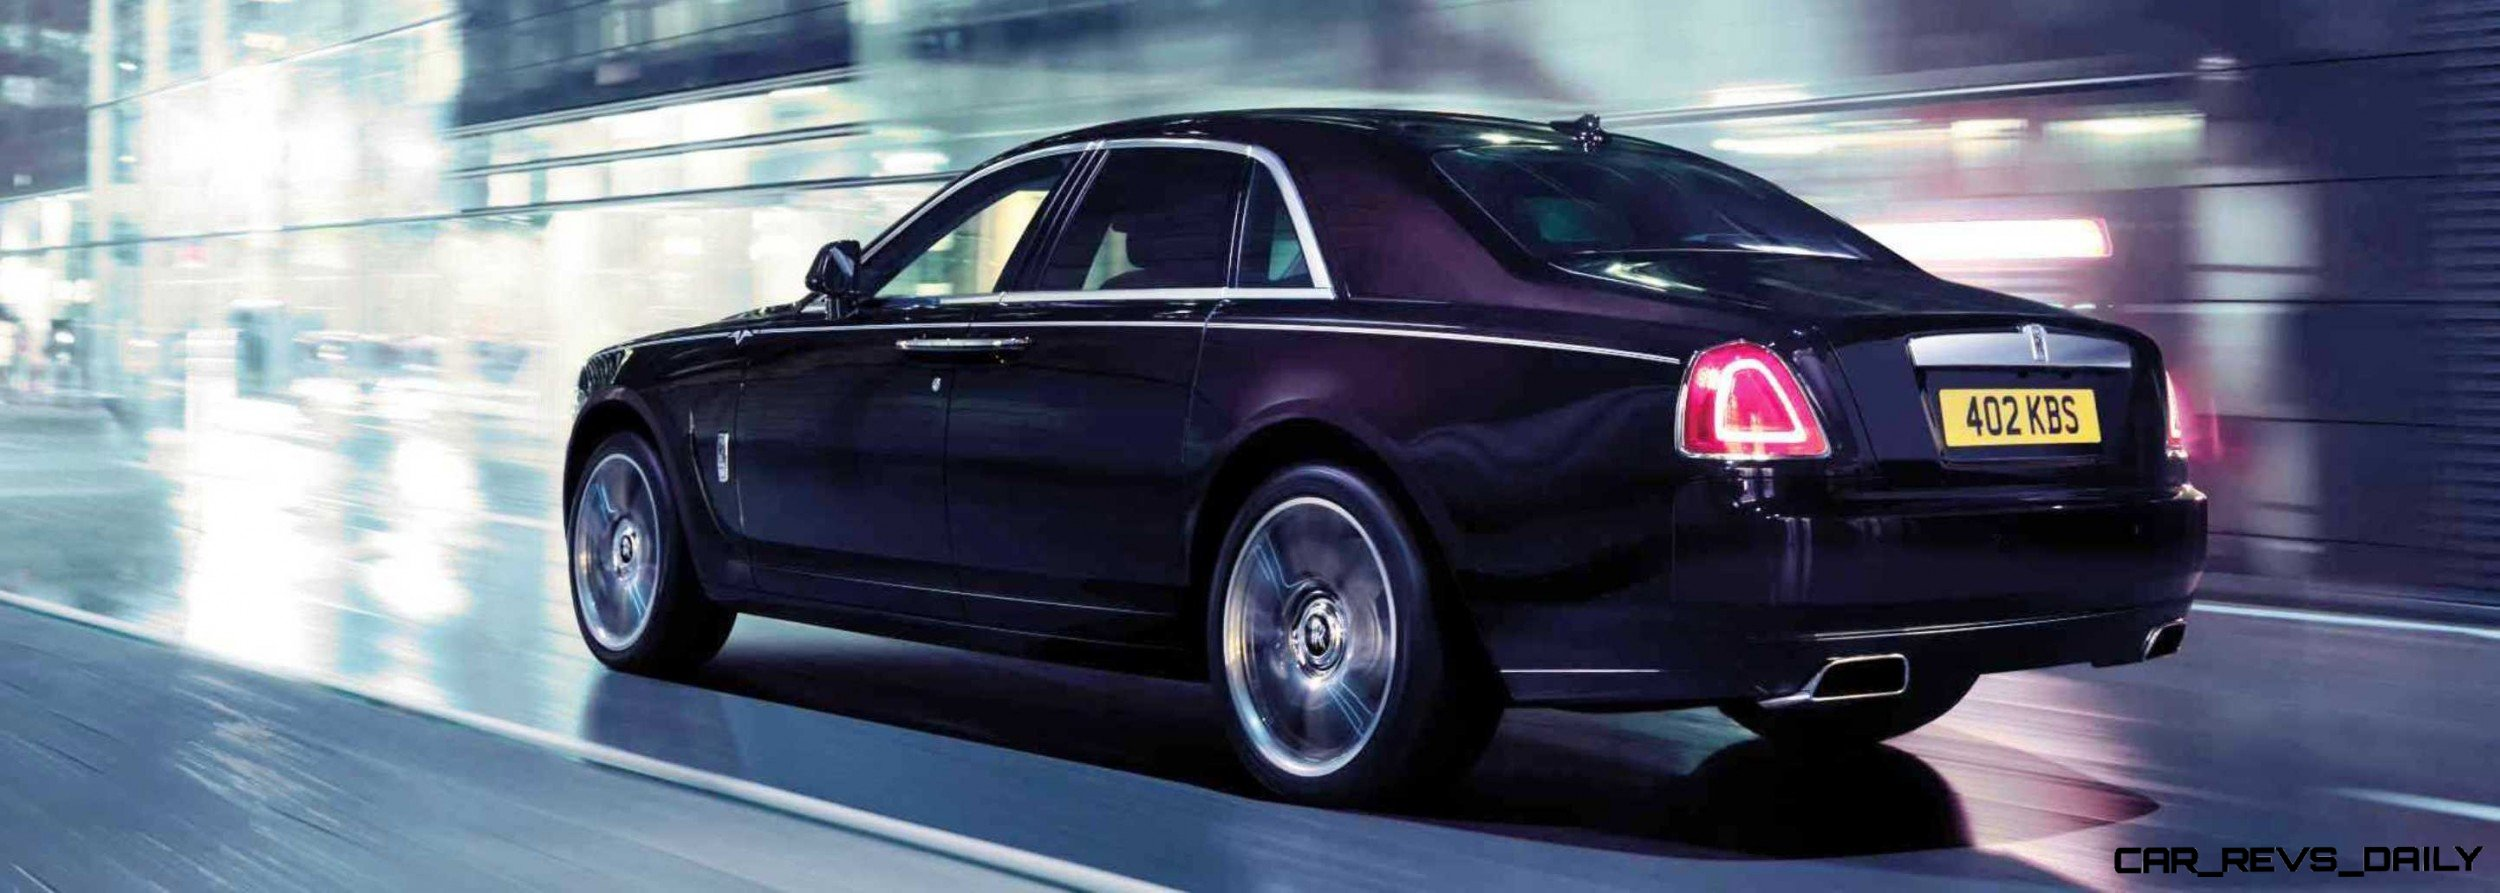 2014 rolls royce ghost v spec adds power dark glamour to swb and lwb 4 doors 4. Black Bedroom Furniture Sets. Home Design Ideas